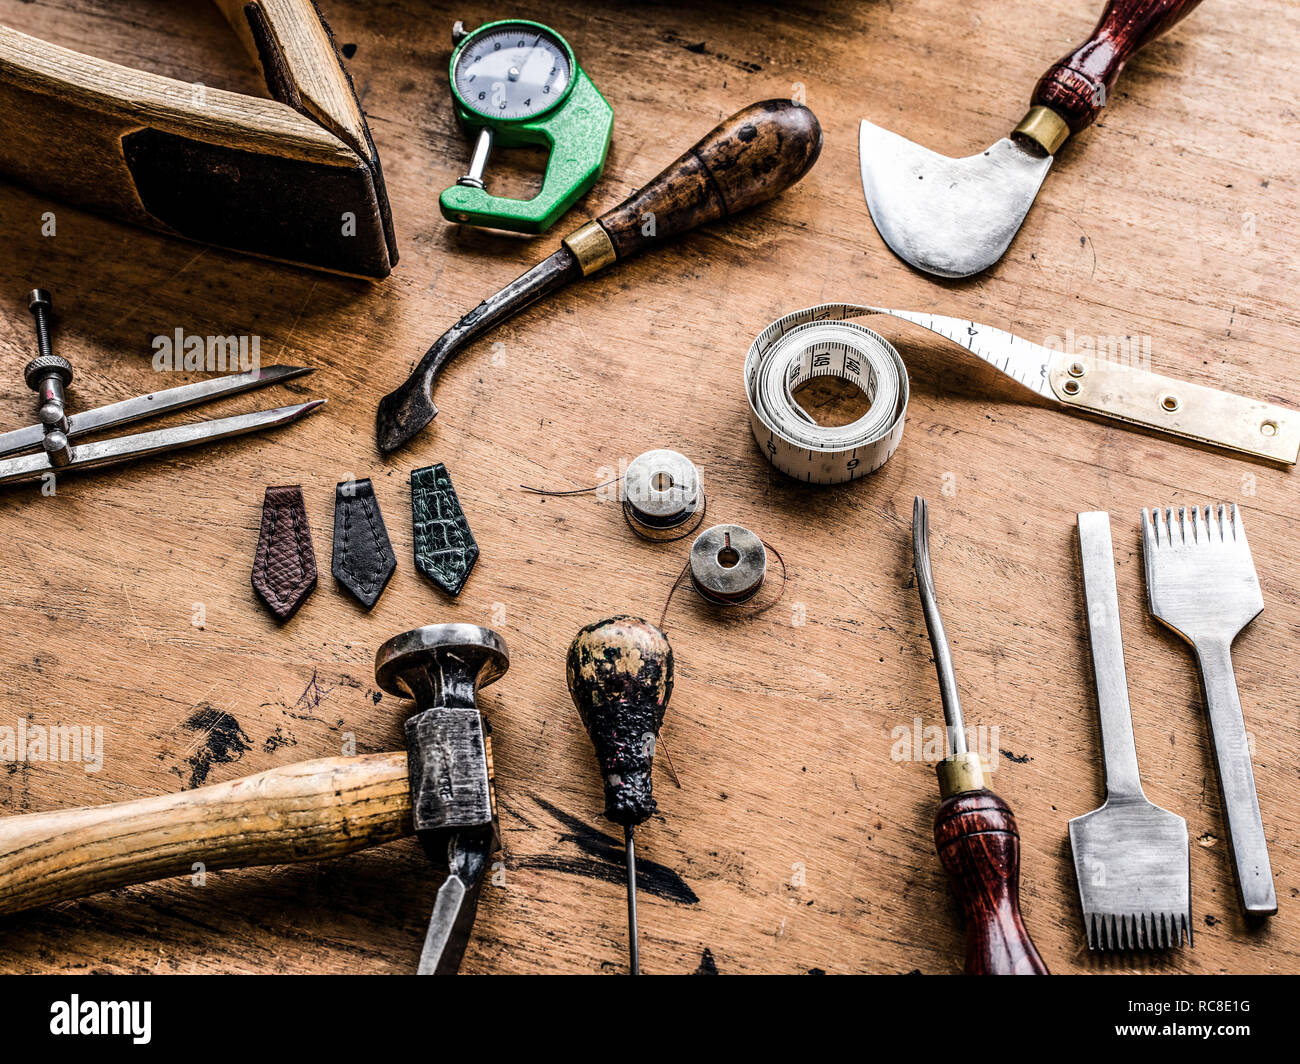 Leatherworker's workbench with hammer, tape measure and specialist tools, still life Stock Photo